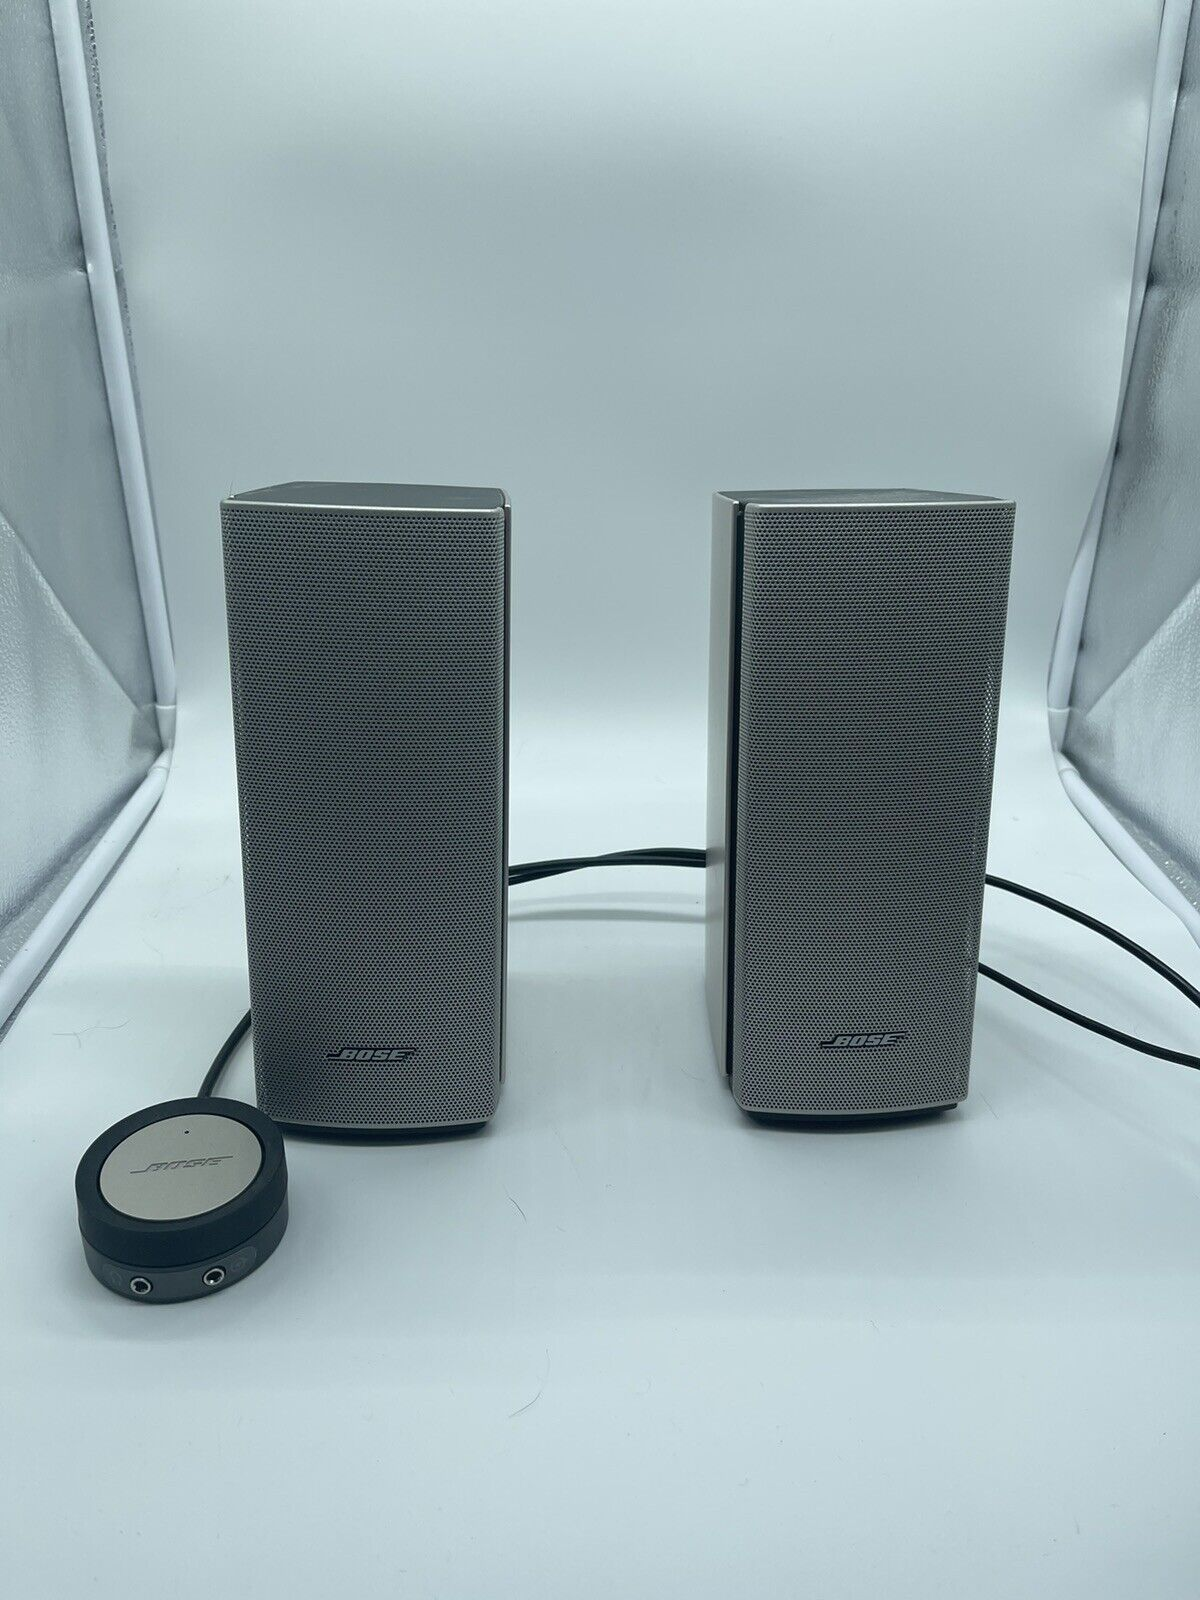 BOSE COMPANION 20 COMPUTER SPEAKER SYSTEM PC/MAC & PHONE FREE SHIPPING . Buy it now for 160.00